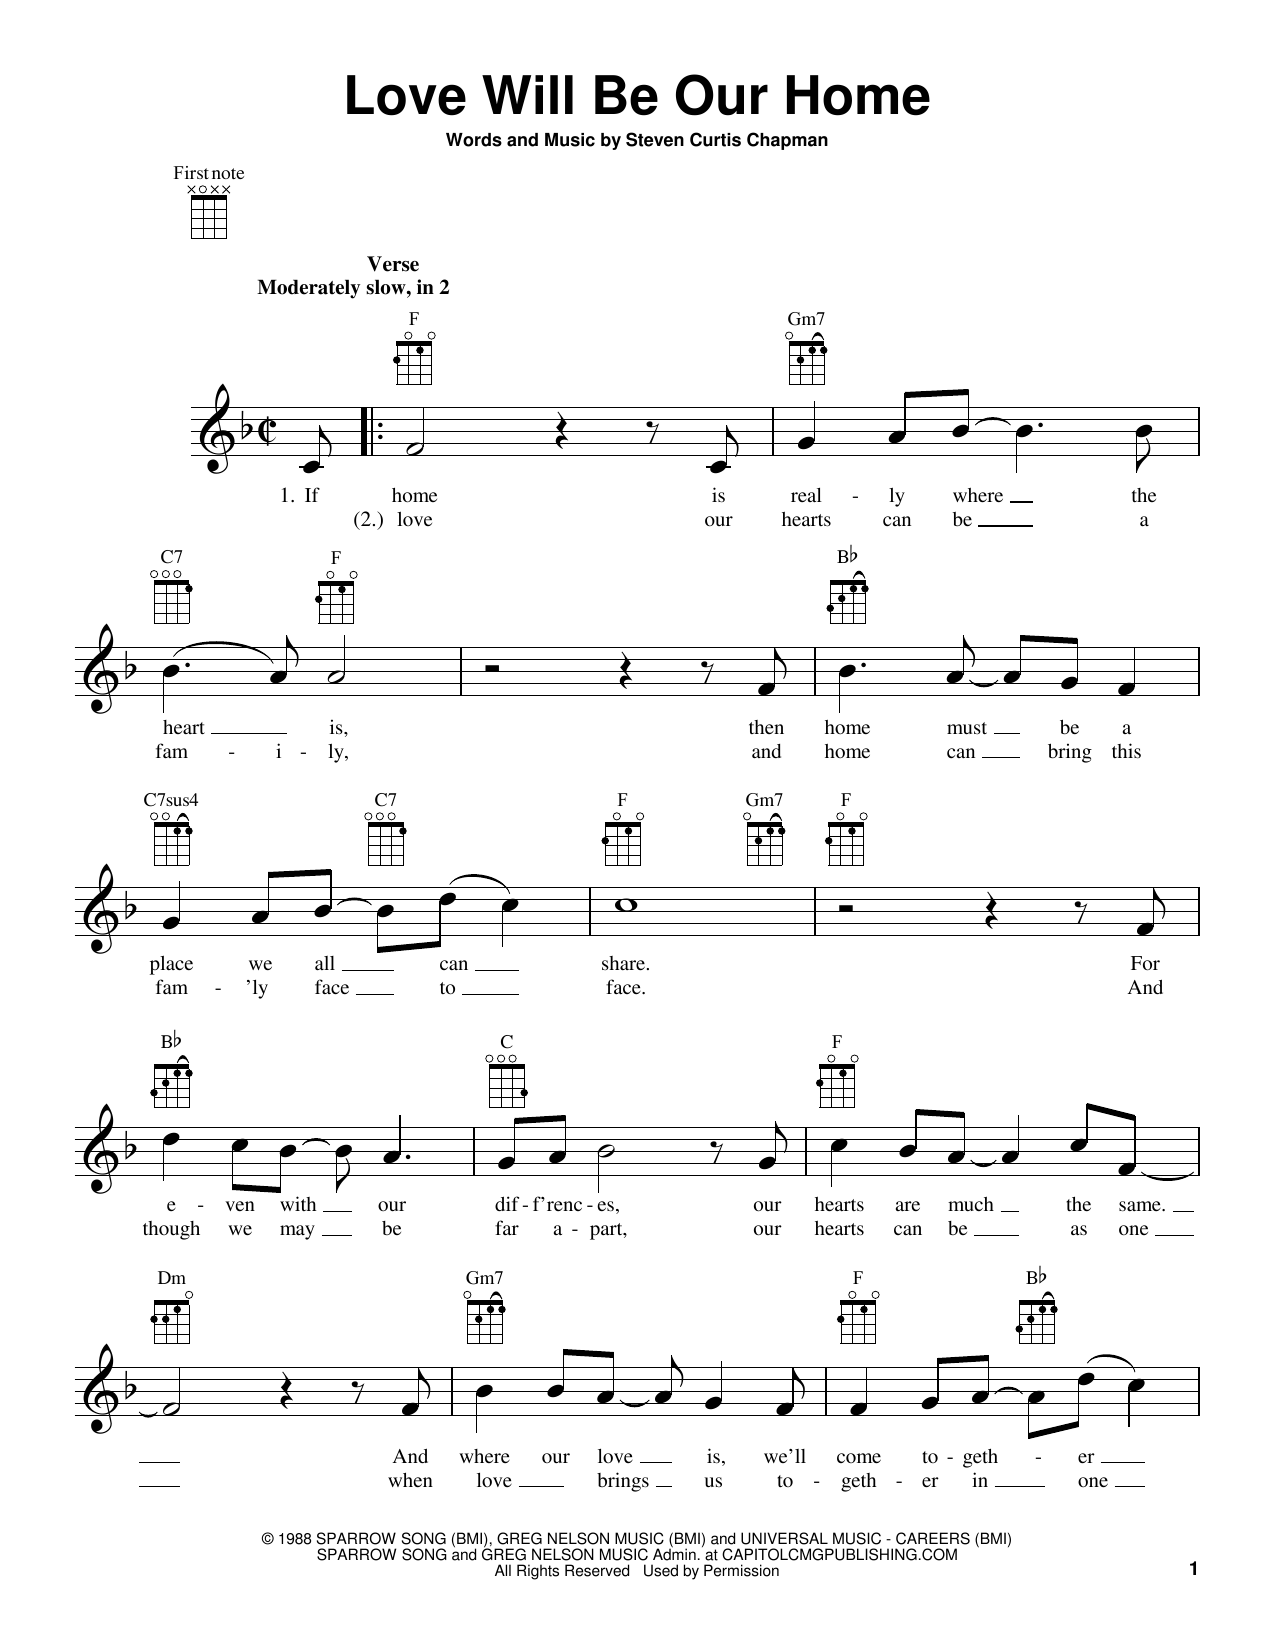 Steven Curtis Chapman Love Will Be Our Home sheet music notes and chords. Download Printable PDF.